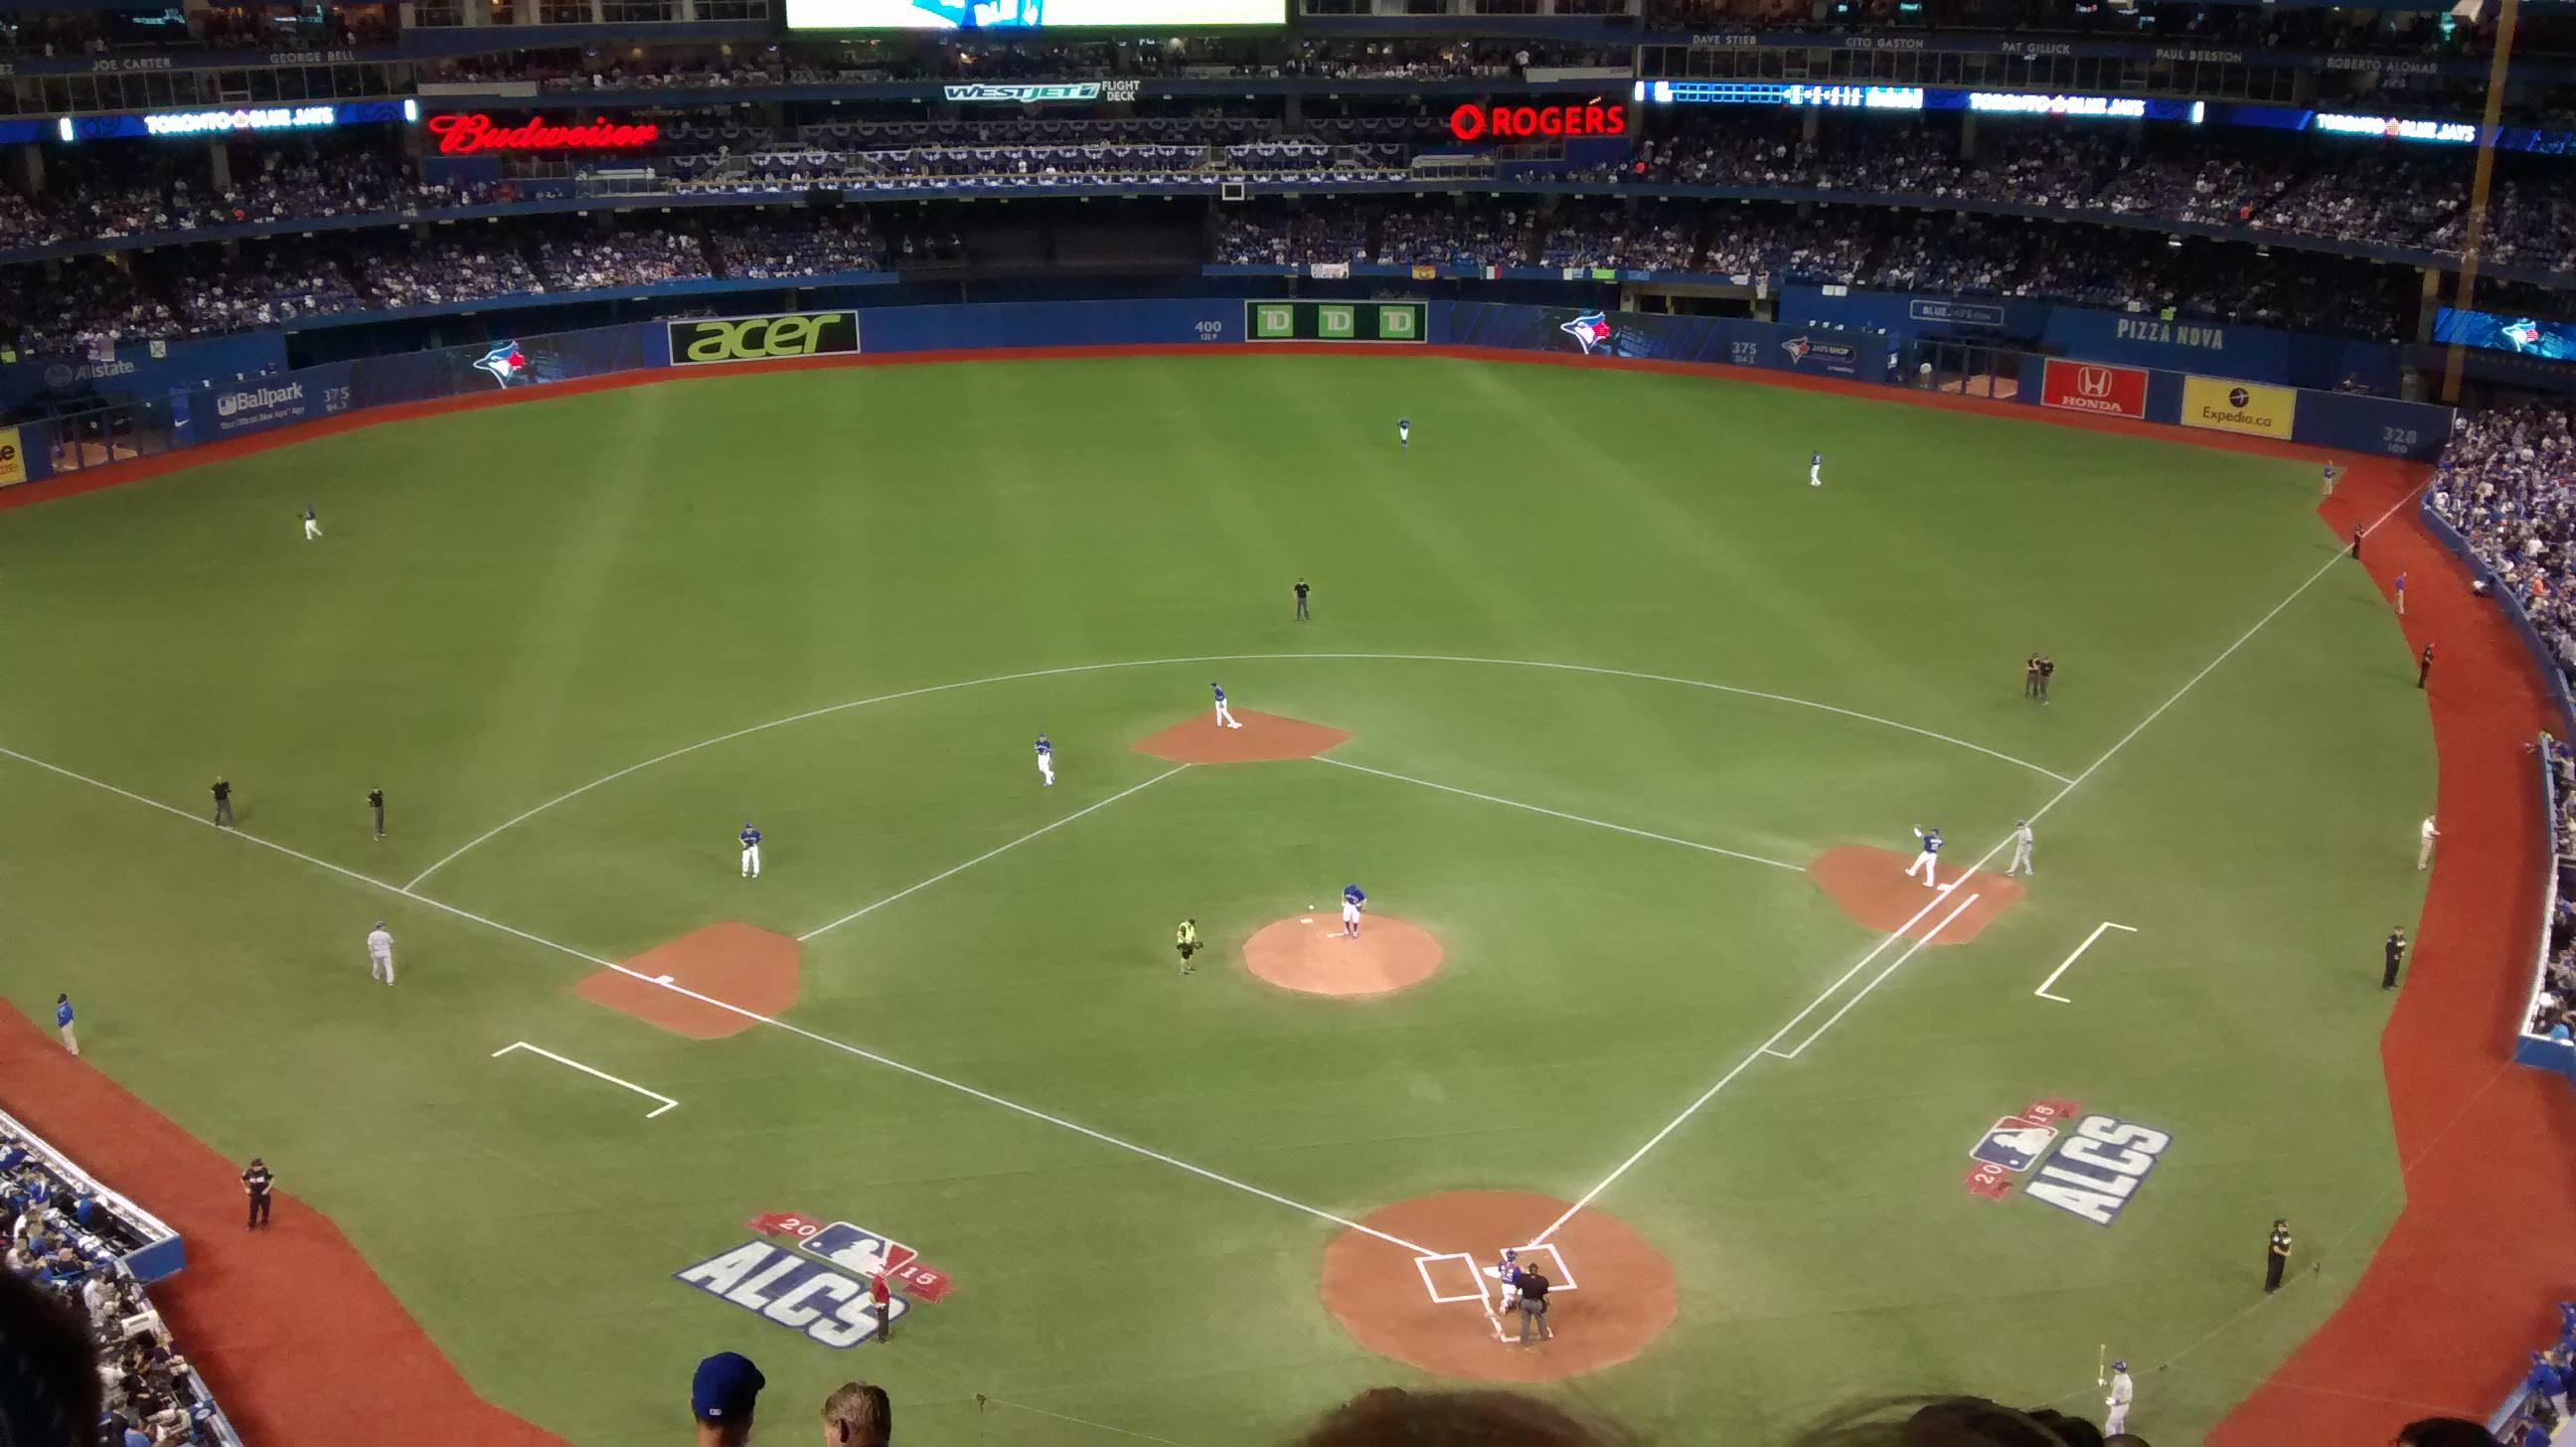 Rogers Centre Section 525L Row 9 Seat 110